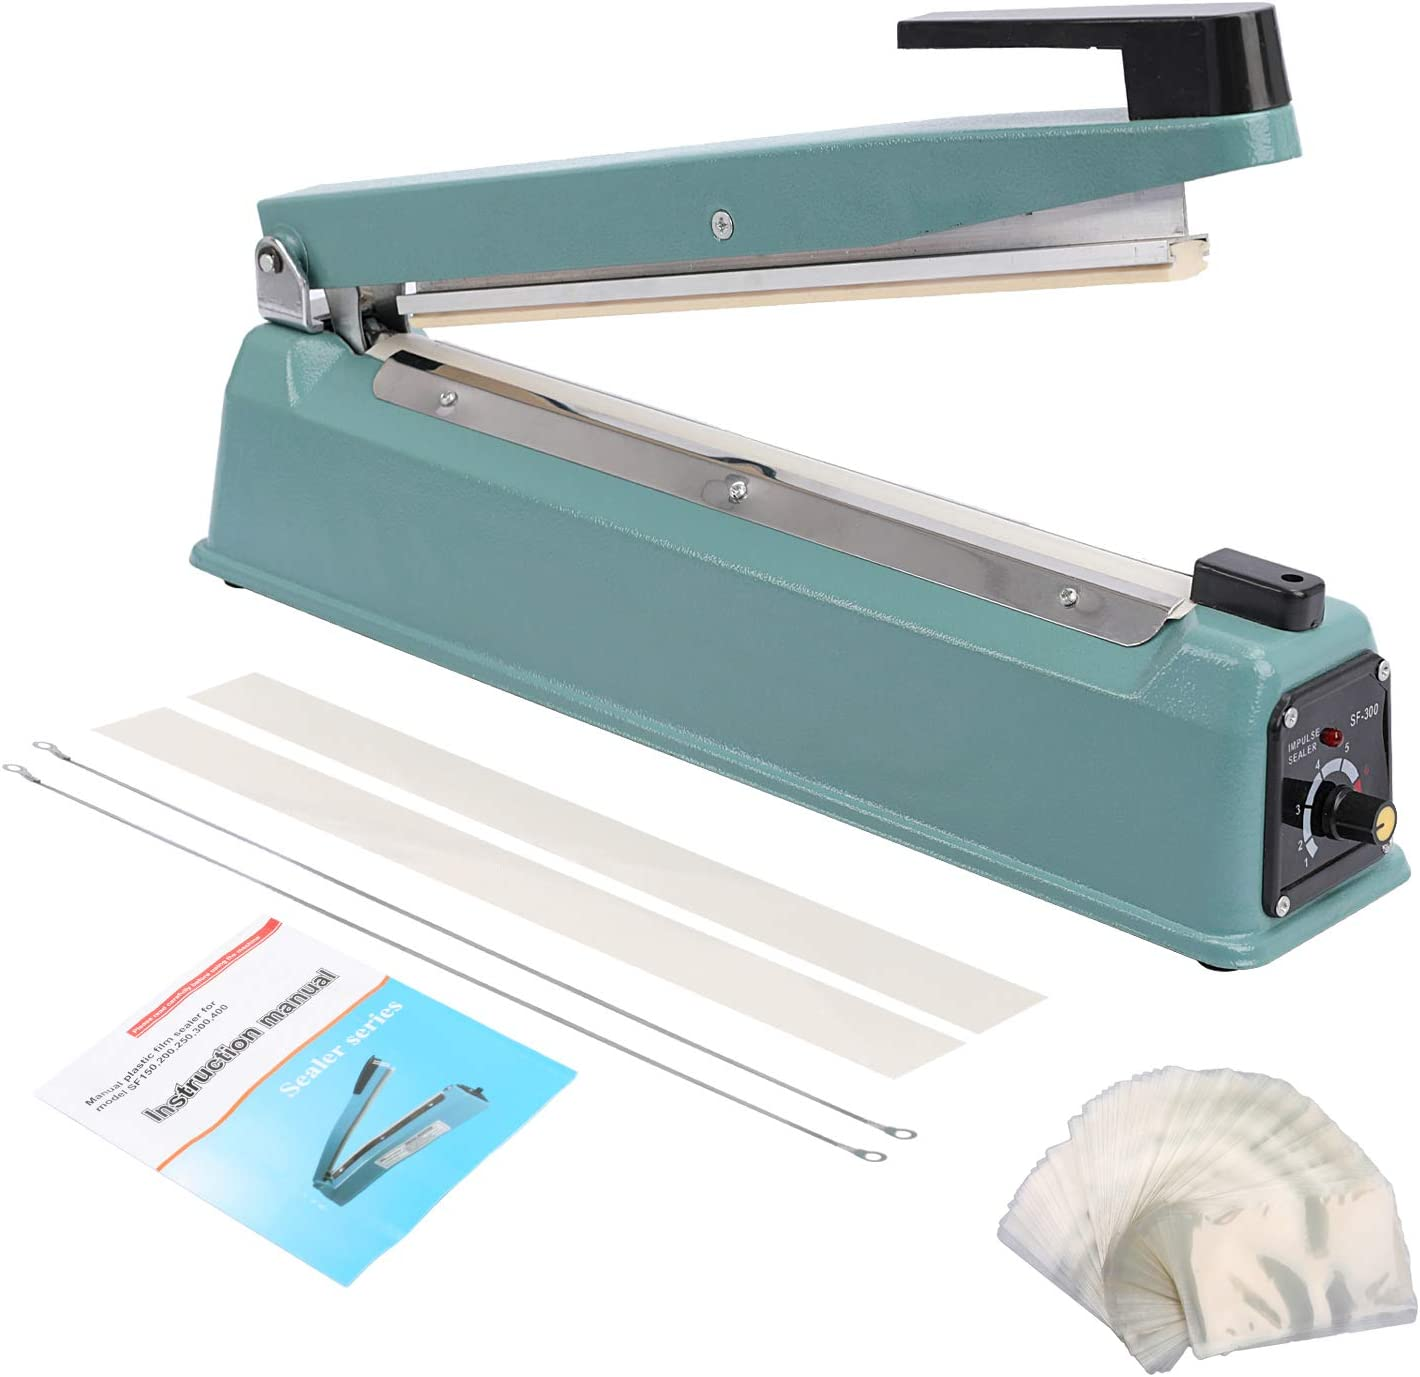 Hopeson 16 inch Impulse Bag Sealer, Manual Poly Bag Heat Sealing Machine Adjustable Timer Electric Heat Seal Closer with 100PCS 4X6 Inch Shrink Wrap Bag and 2 Free Replacement Kit (Blue)